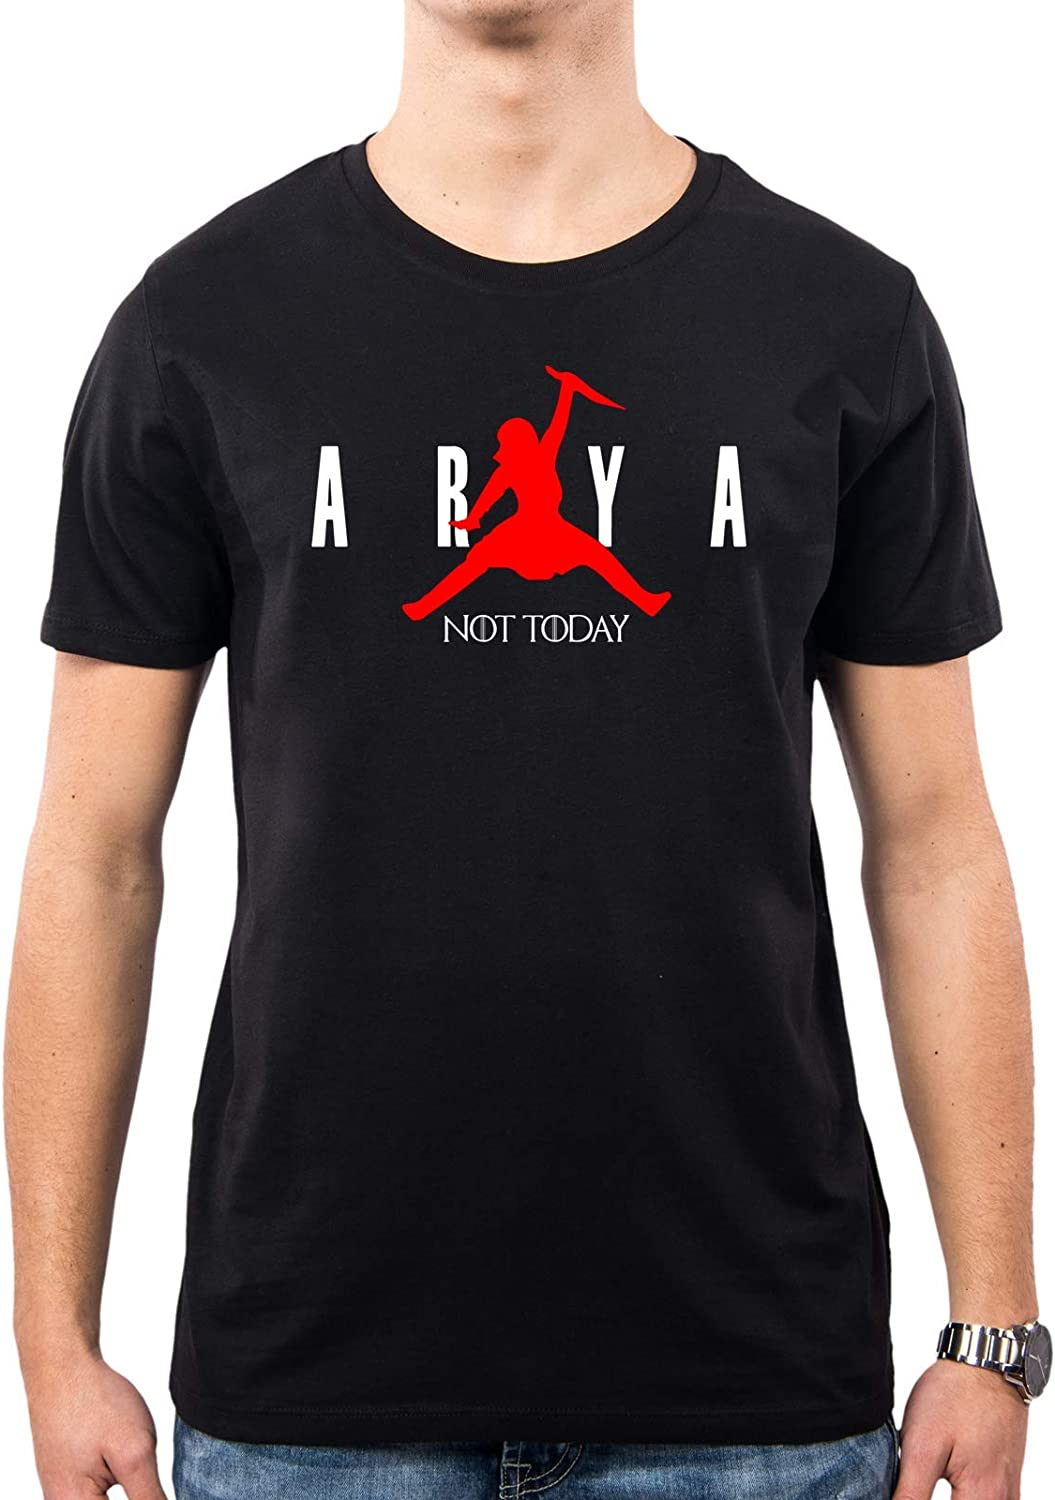 PACDESIGN T-Shirt Uomo Game of Thrones Arya Stark Not Today Got 8 Il Trono di Spade Serie TV PD1575A